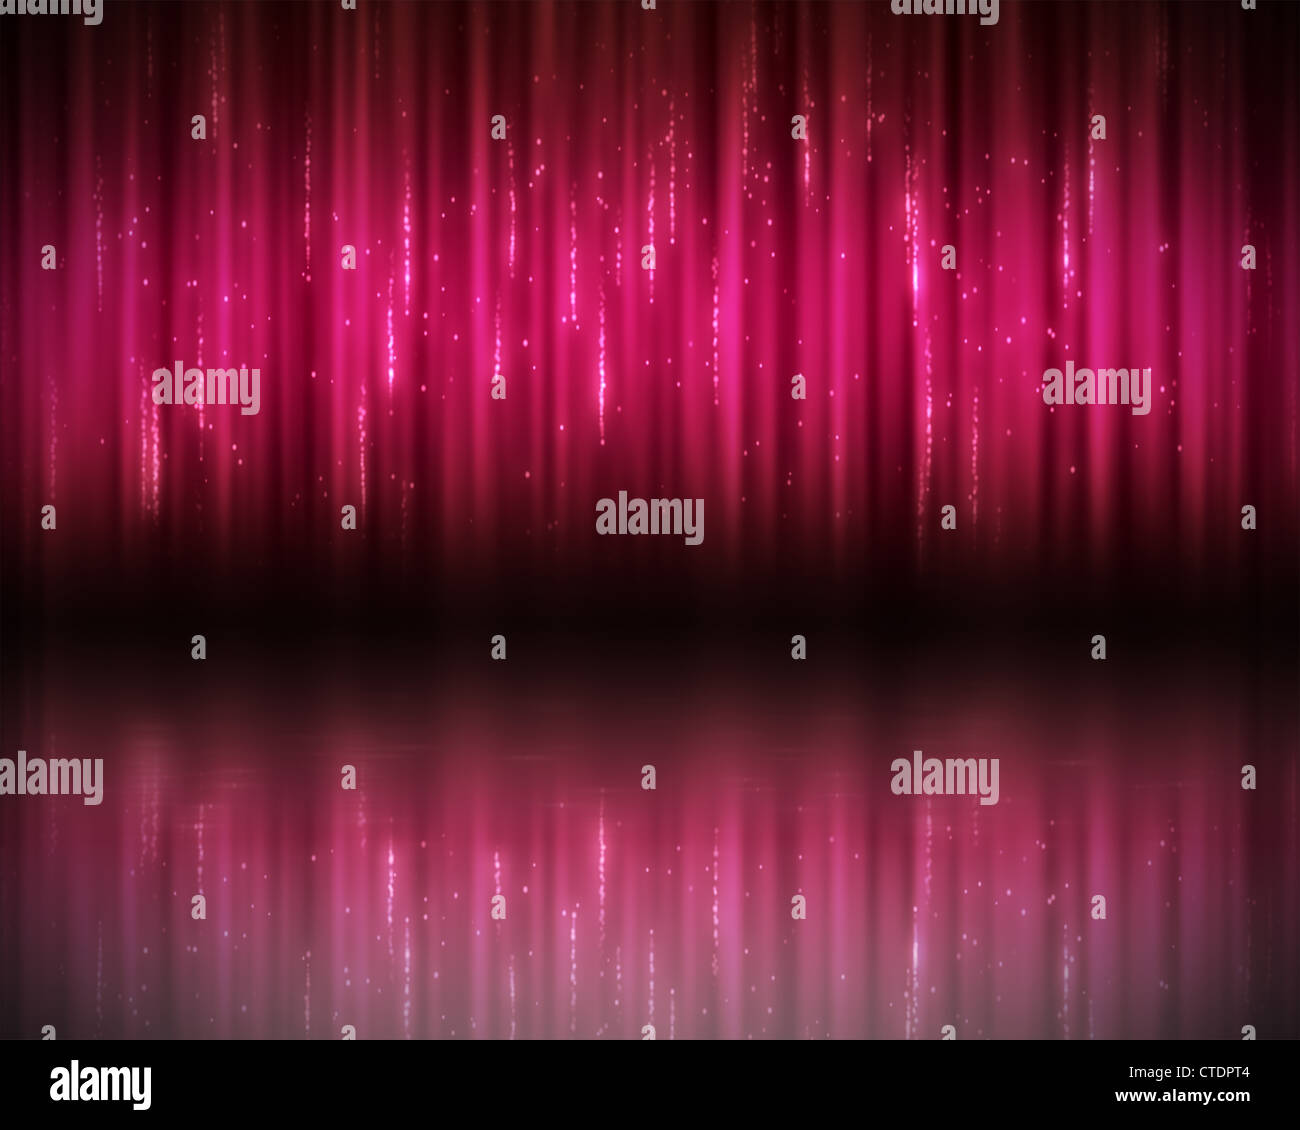 Background of magenta lines - Stock Image